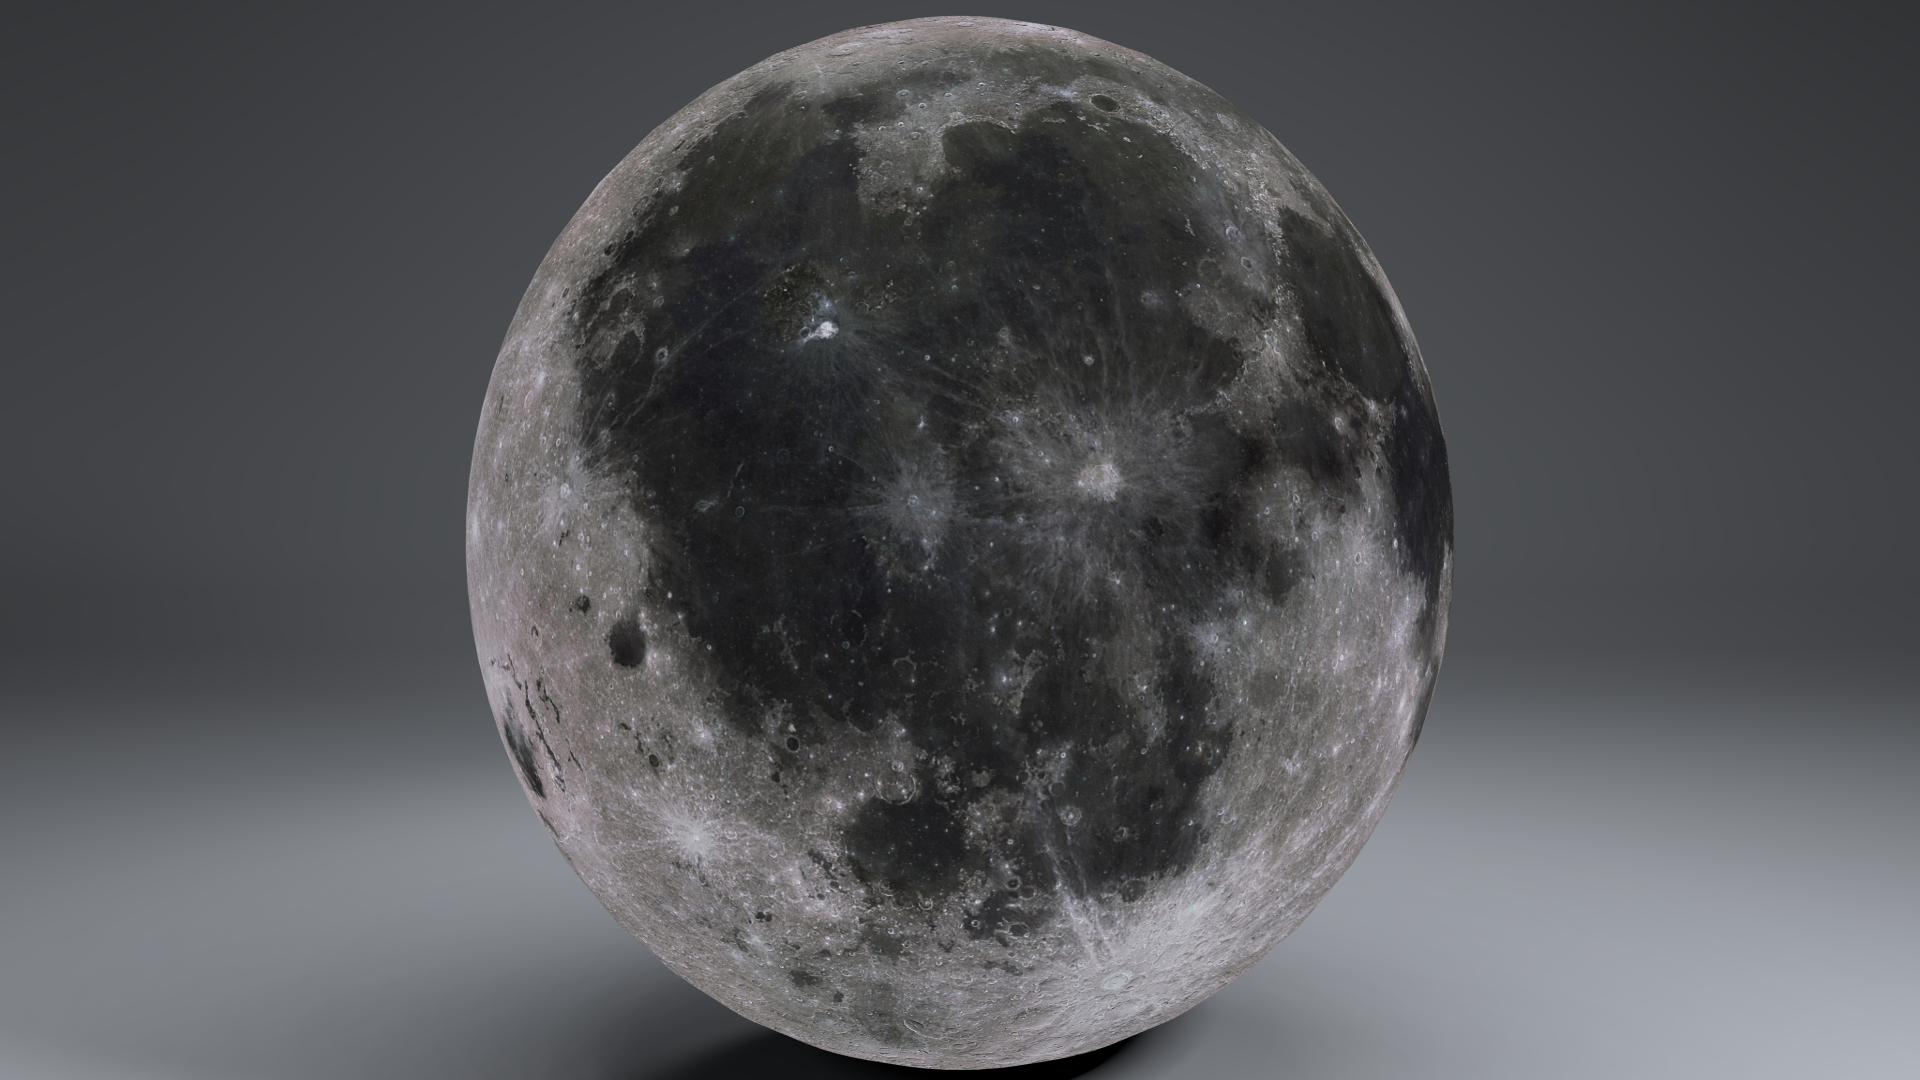 moonglobe 4k 3d model 3ds fbx blend dae obj 221759